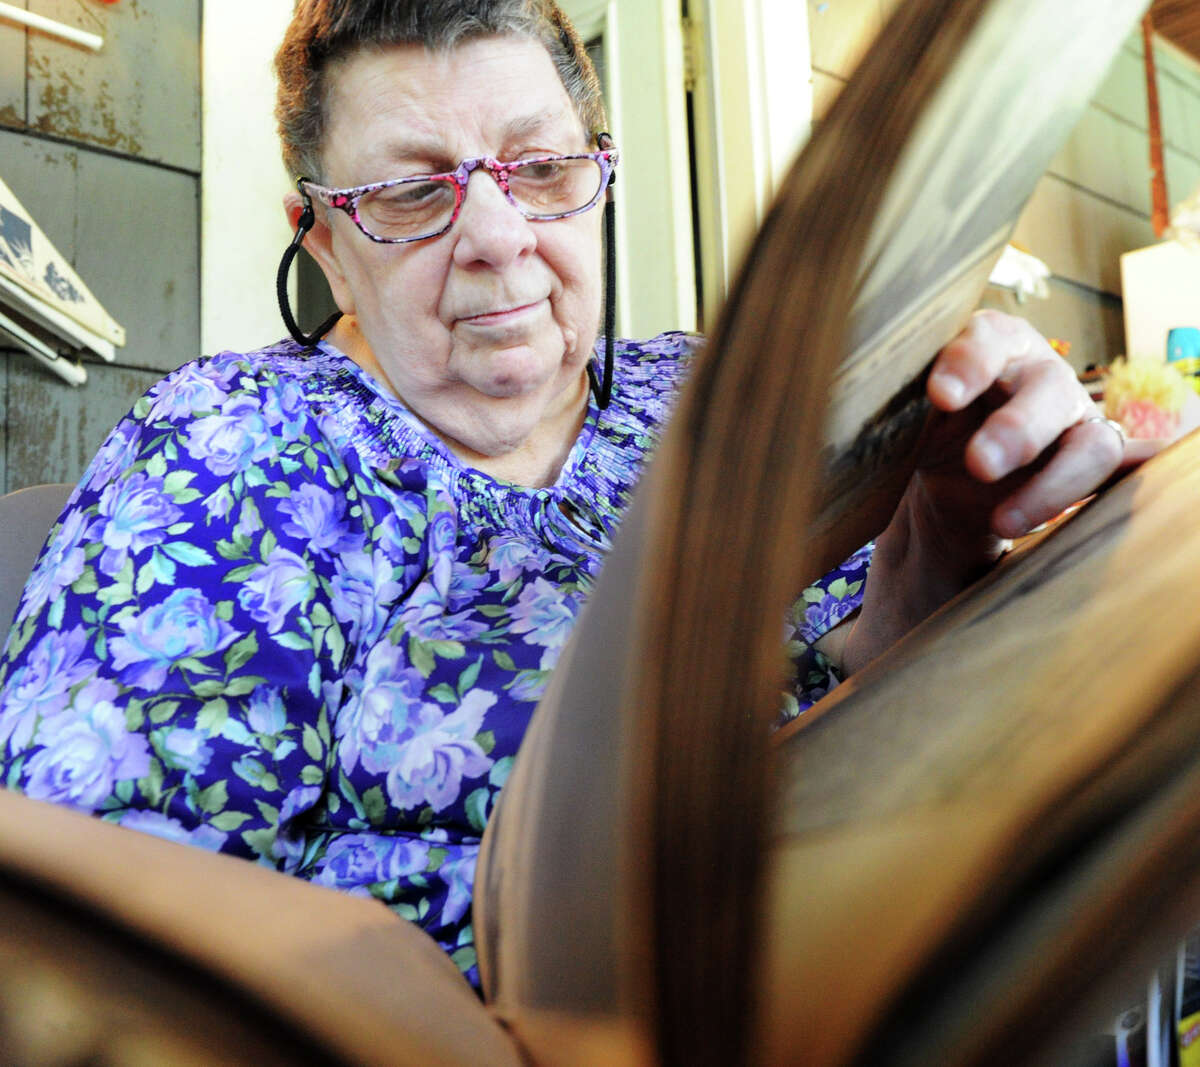 Stamford native Frances Flynn looks through a scrap book memorializing her father, Gustave Belasco WT 2nd Class, in her home in Stamford, Conn., July 30, 2012. Belasco was killed in the Guadalcanal battle during World War II, August 9 is the 70th anniversary of the battle.